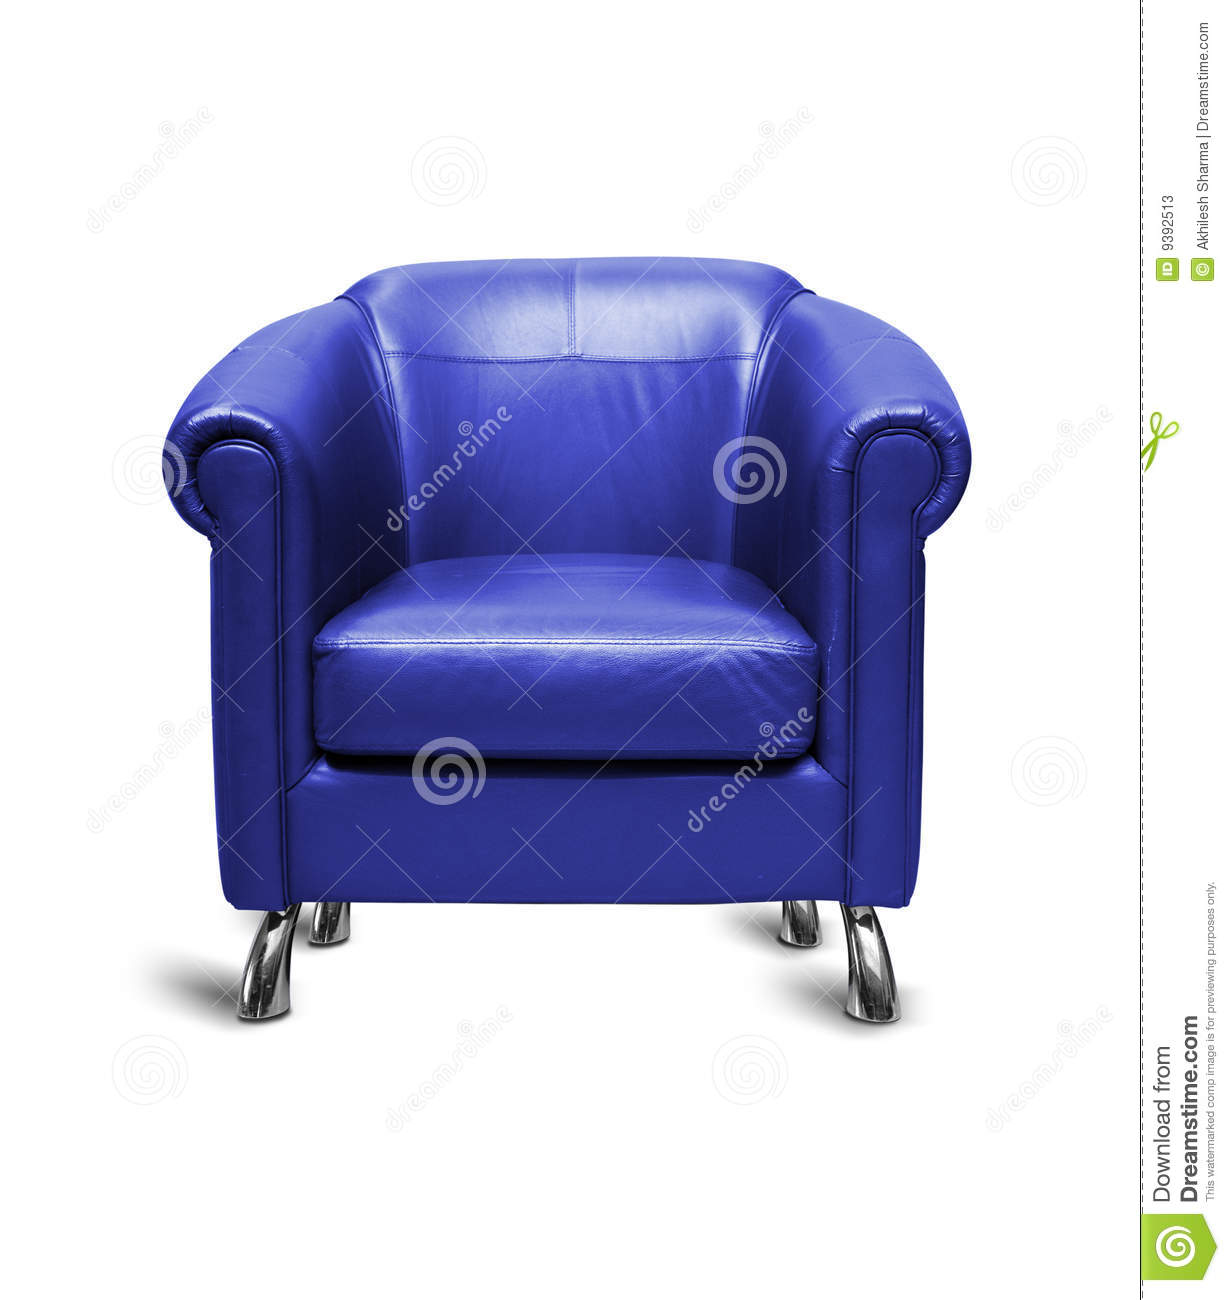 Blue leather sofa in white background